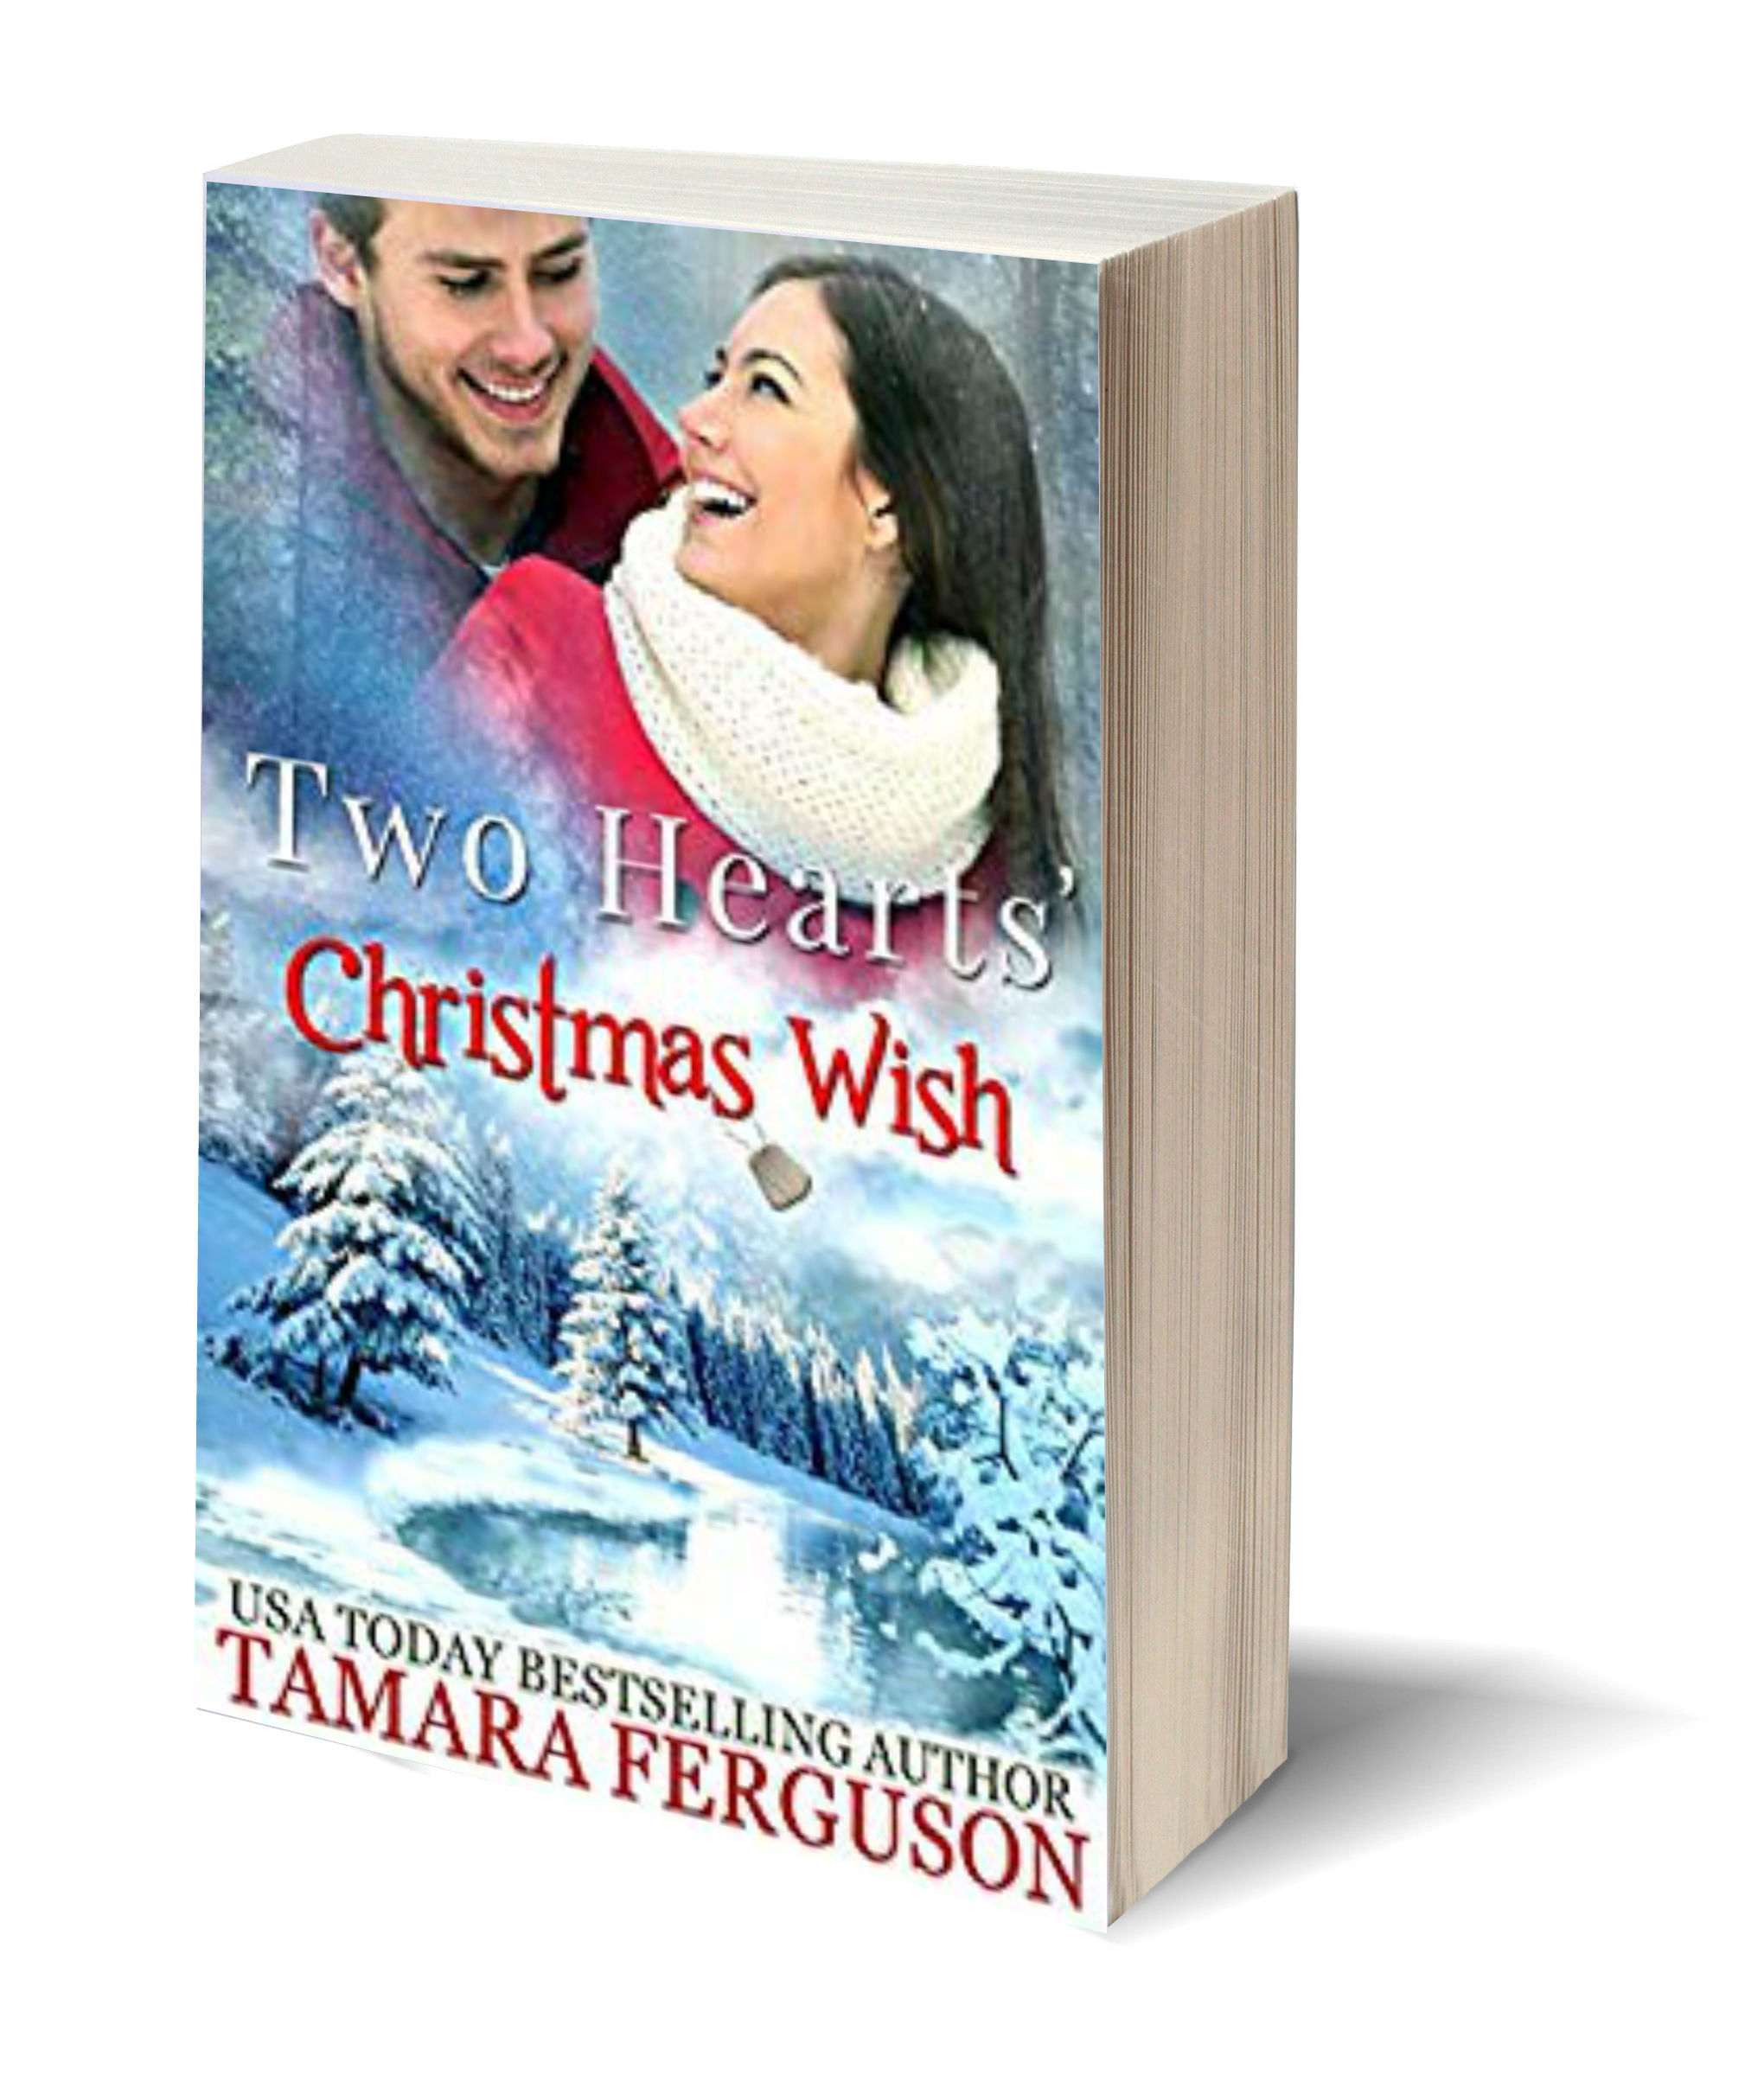 Two hearts christmas wish USA 3D-Book-Template.jpg